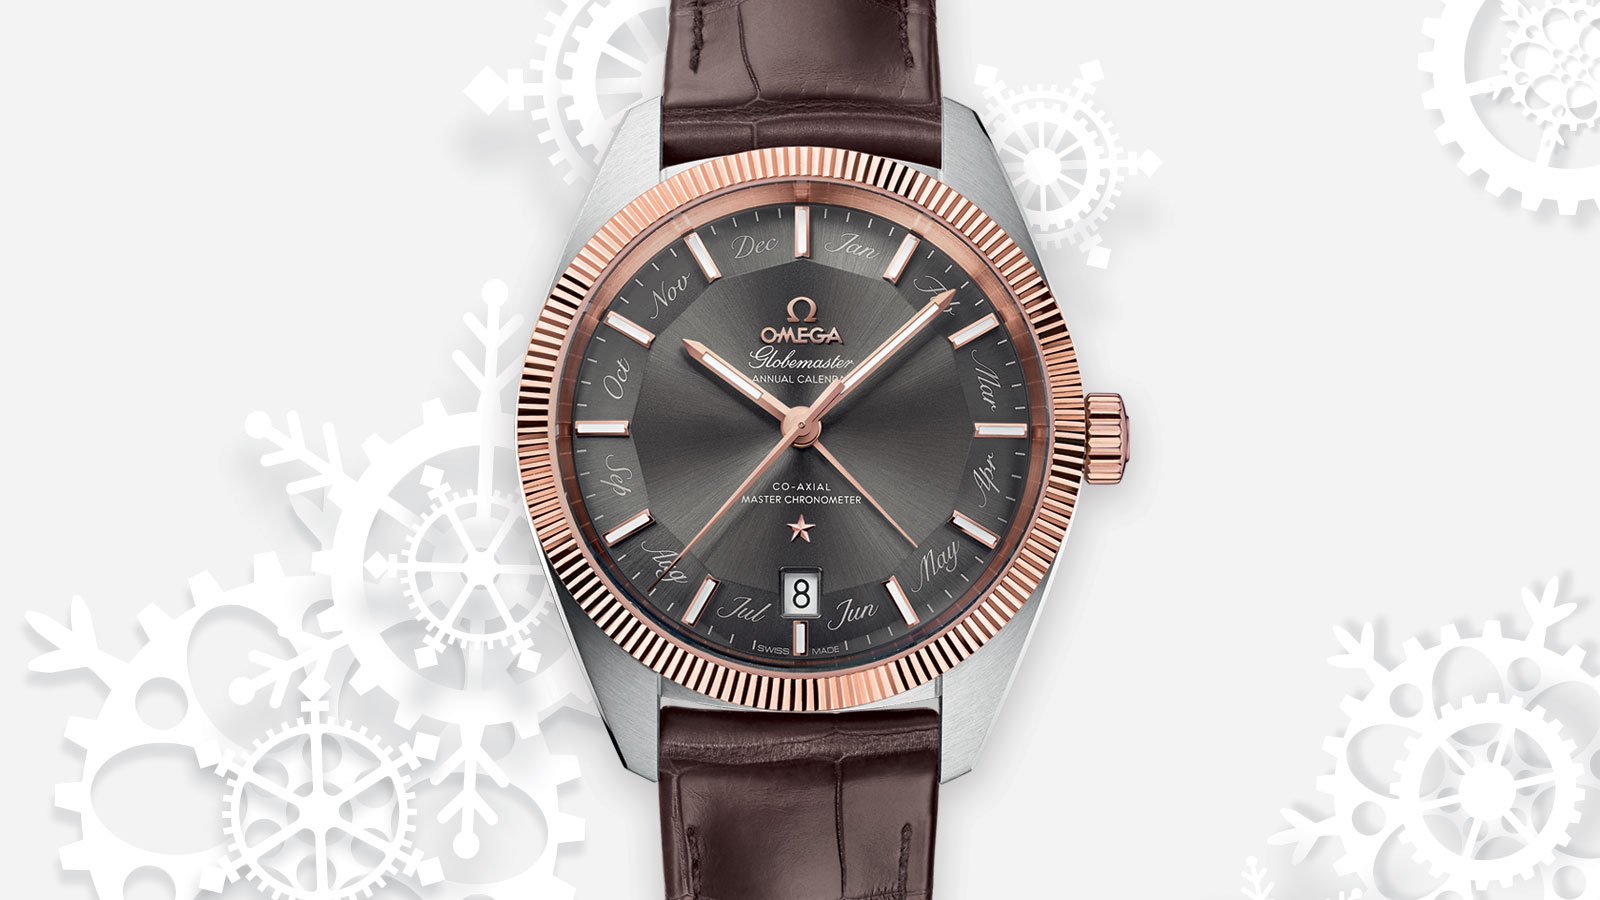 Constellation グローブマスター Globemaster Omega Co‑Axial Master Chronometer Annual Calendar 41 mm ウォッチ - 130.23.41.22.06.001